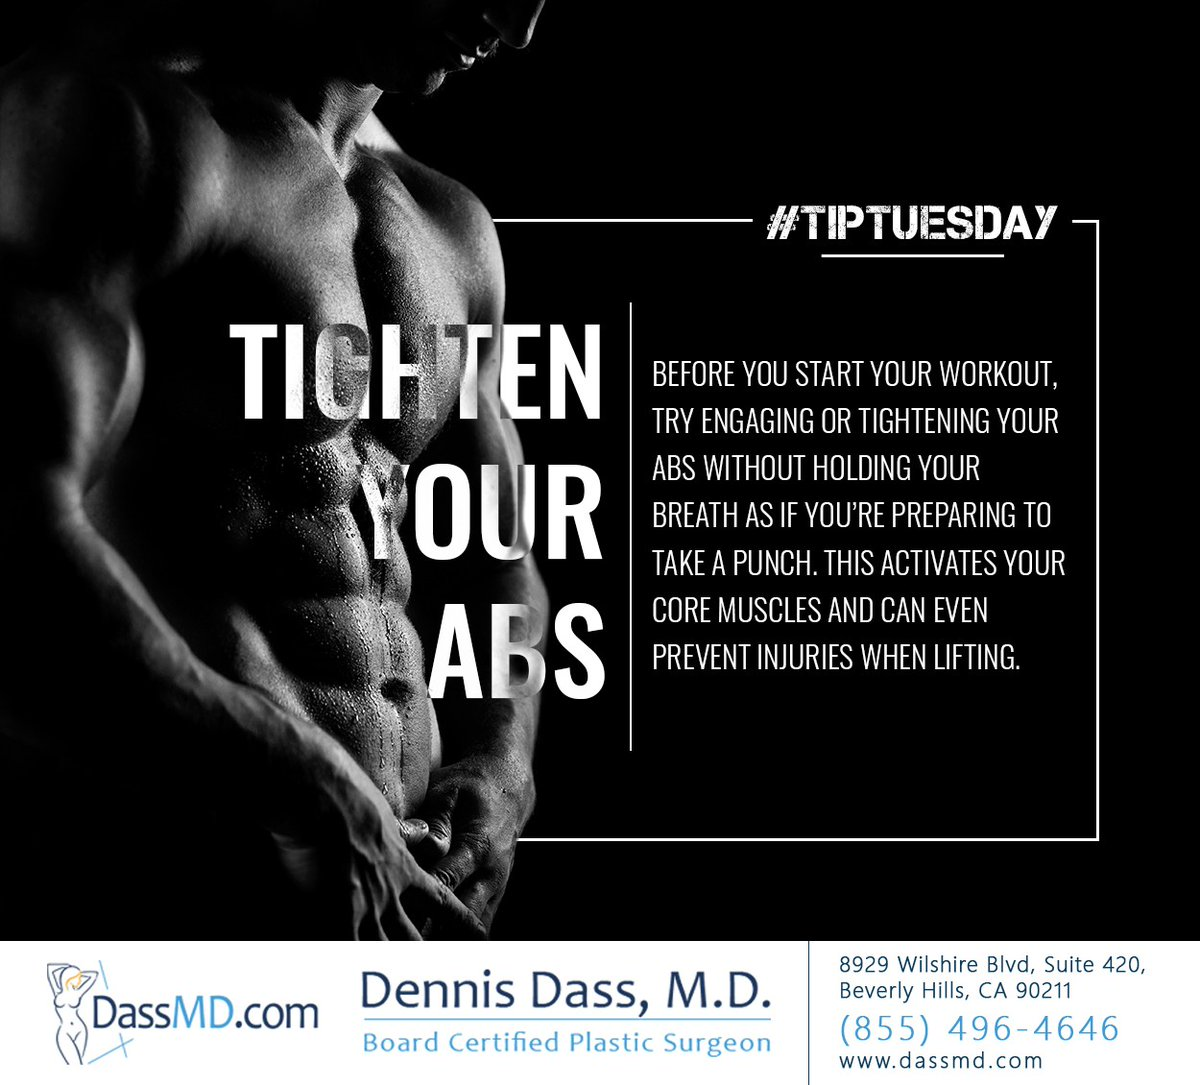 Try this tip out before your next workout and see if you notice any improvement. Let us know in the comments if it works for you! #Tiptuesday #stayinshape #beverlyhills #CA #dennisdassmd